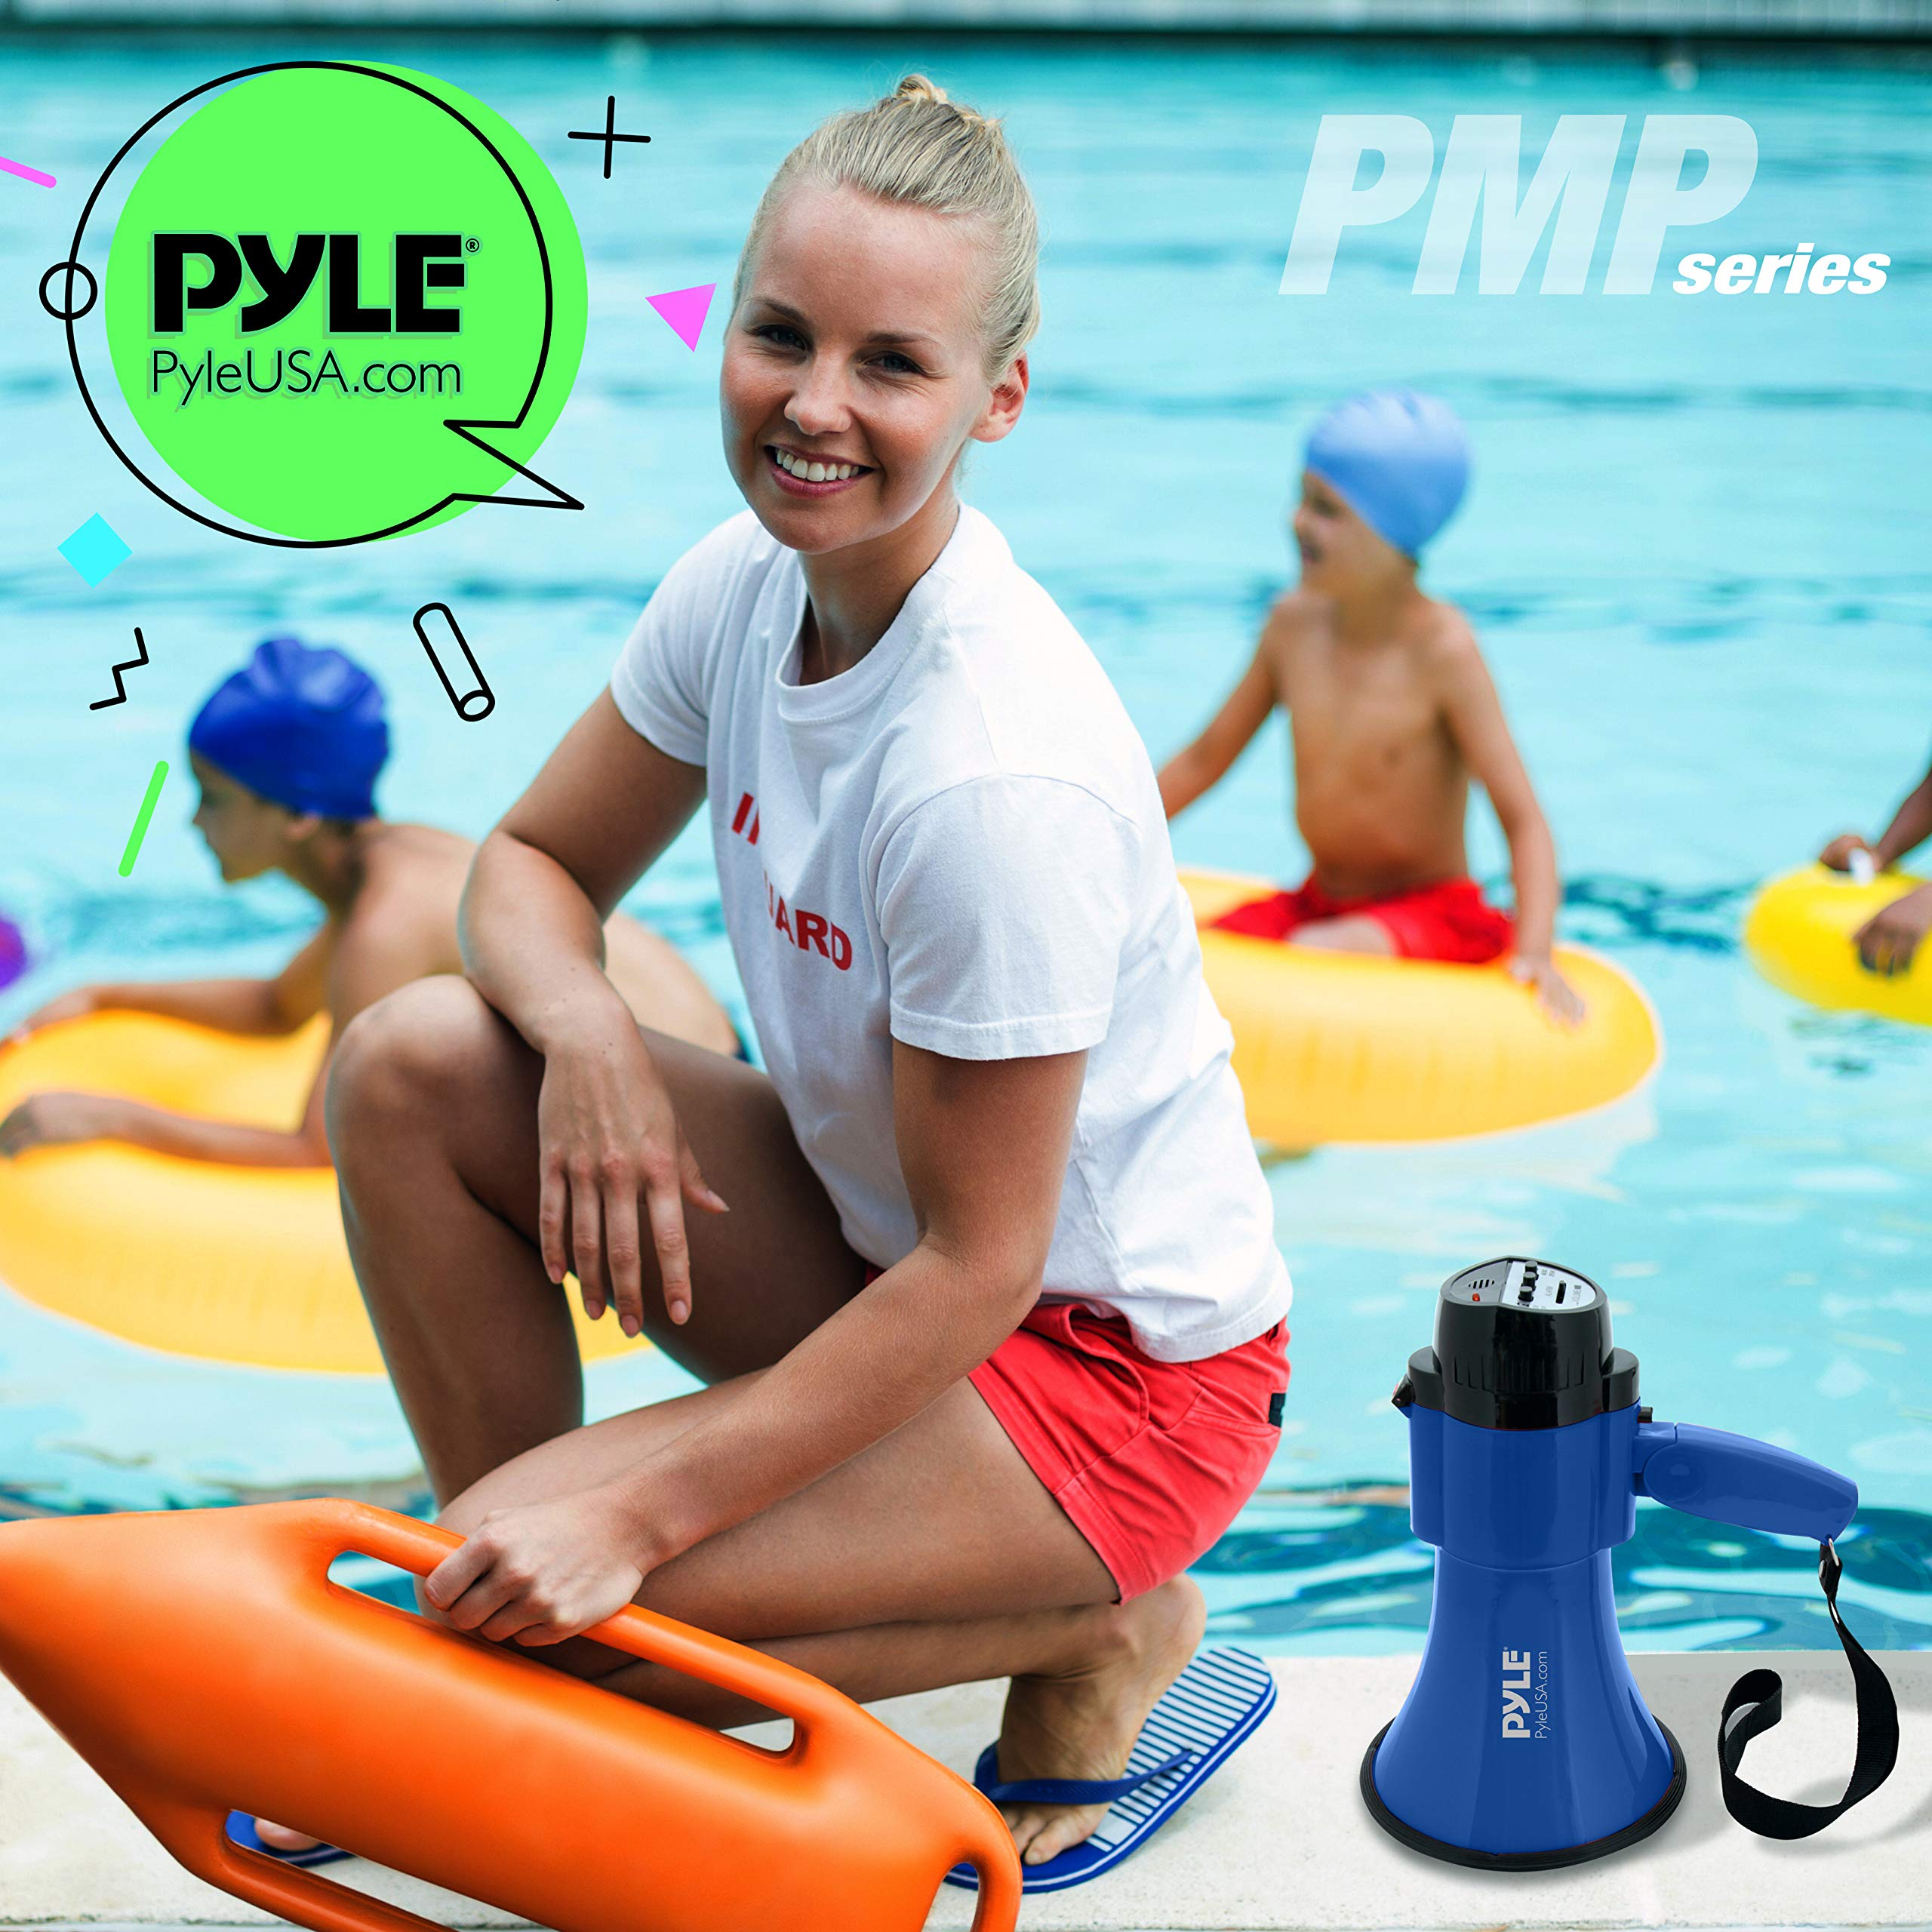 Portable Megaphone Speaker Siren Bullhorn - Compact and Battery Operated with 30 Watt Power, Microphone, 2 Modes, PA Sound and Foldable Handle for Cheerleading and Police Use - Pyle PMP31BL (Blue) by Pyle (Image #7)